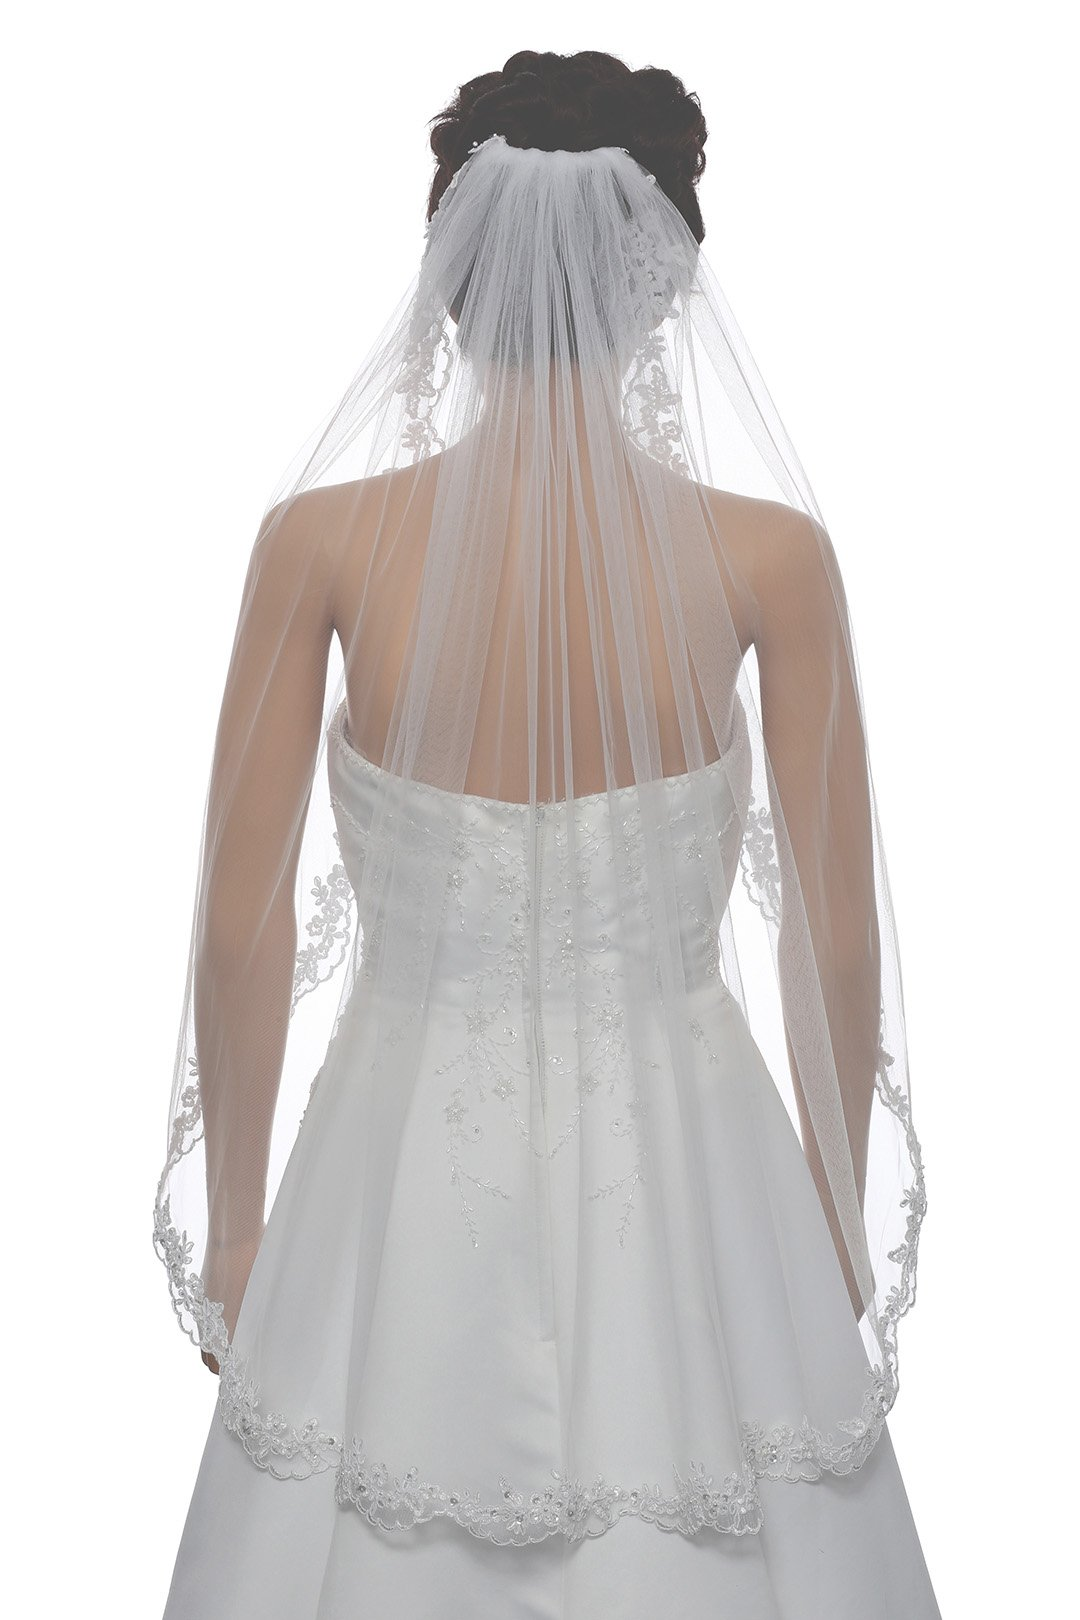 1T 1 Tier Flower Scallop Embroided Lace Pearl Veil - Ivory Fingertip Length 36'' V467 by SAMKY